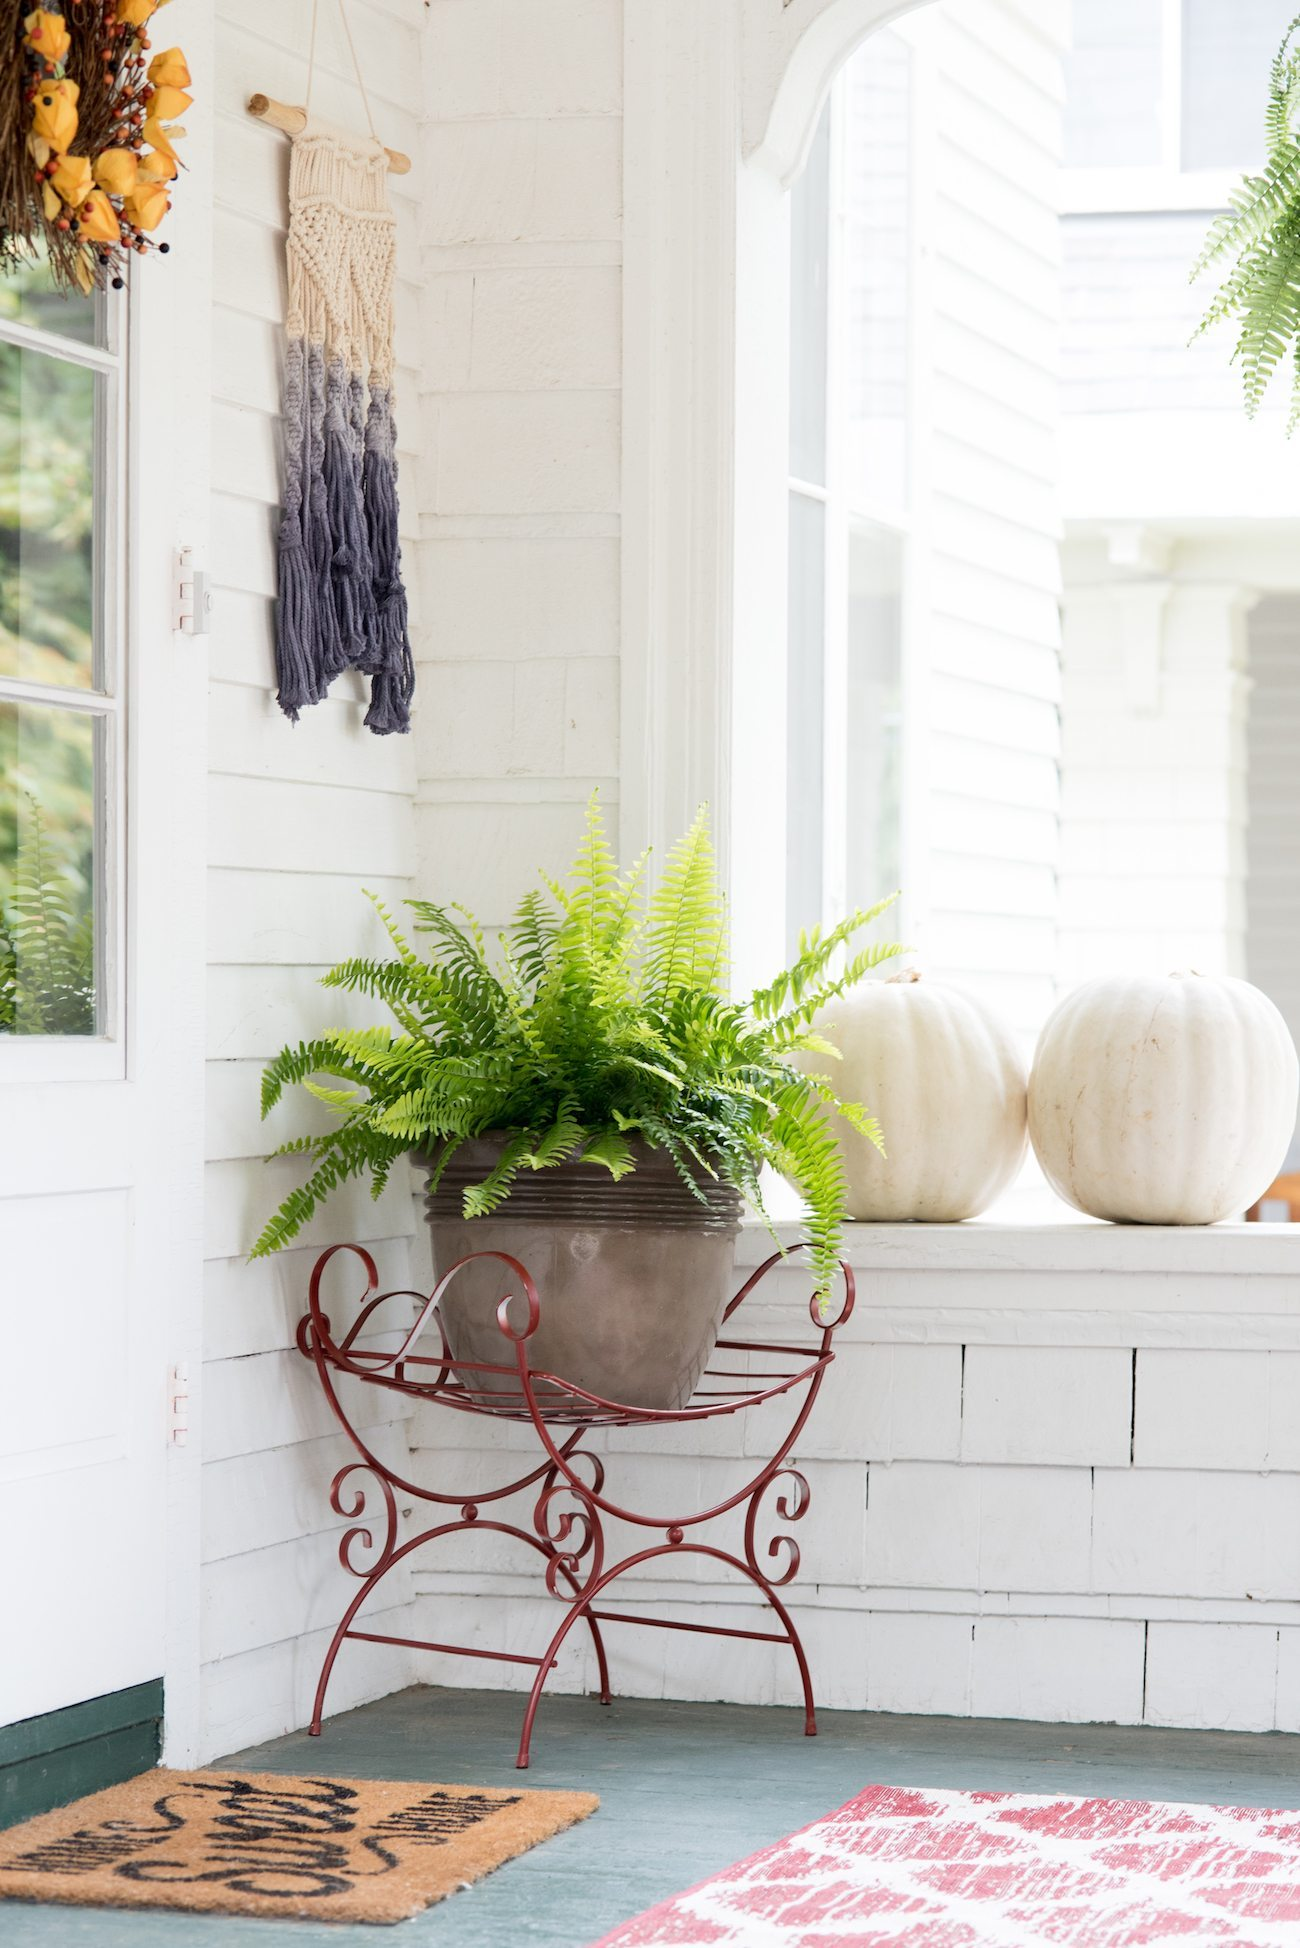 Our Fall Front Porch Decor - The Sweetest Occasion